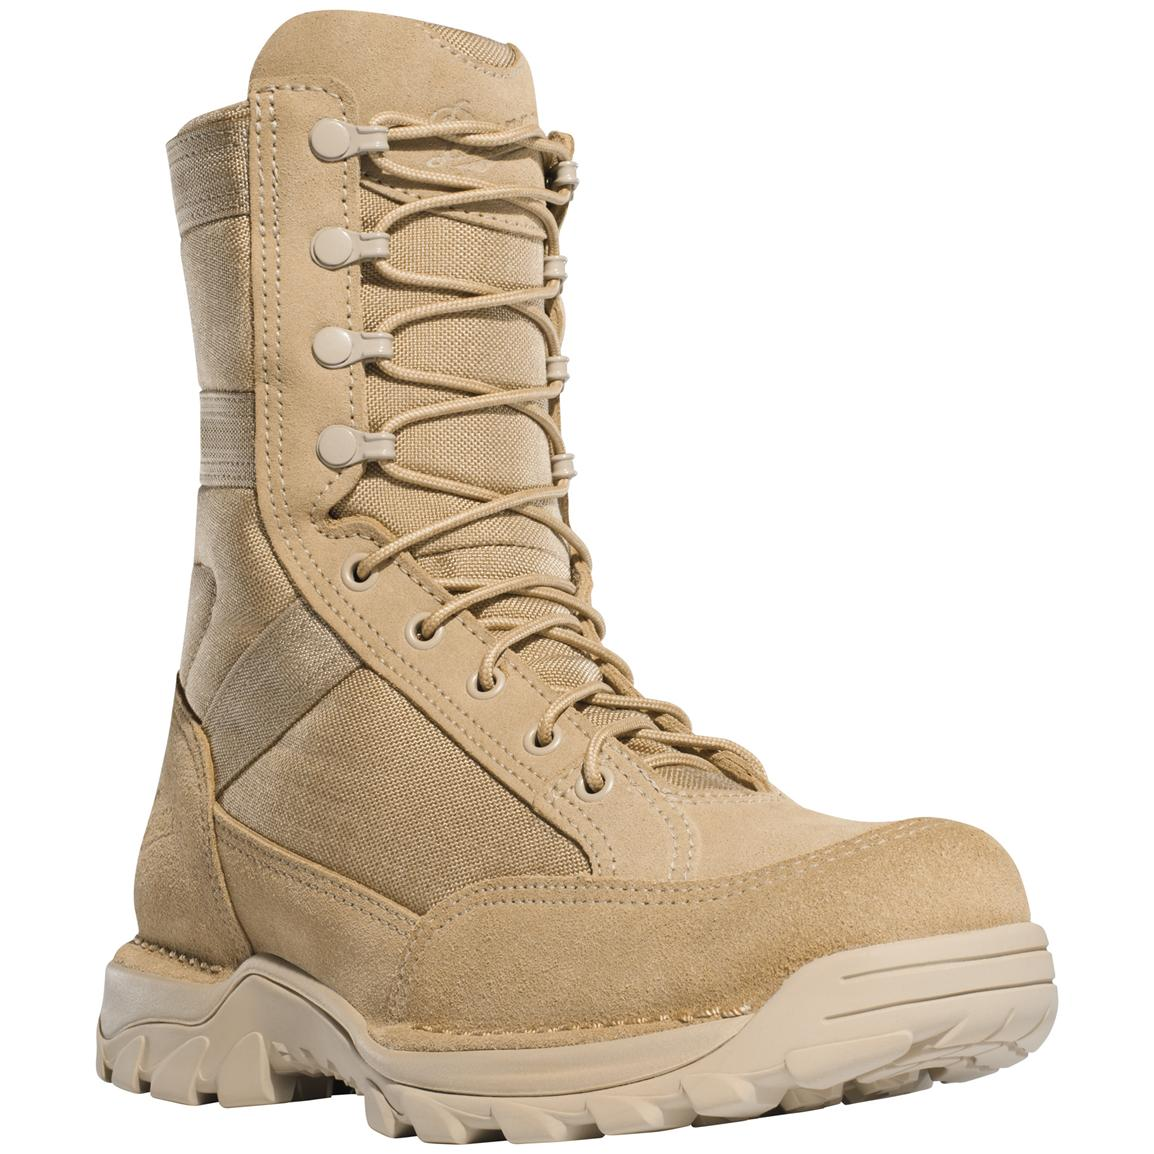 Women's 8 inch Danner® Rivot TFX® Military Boots